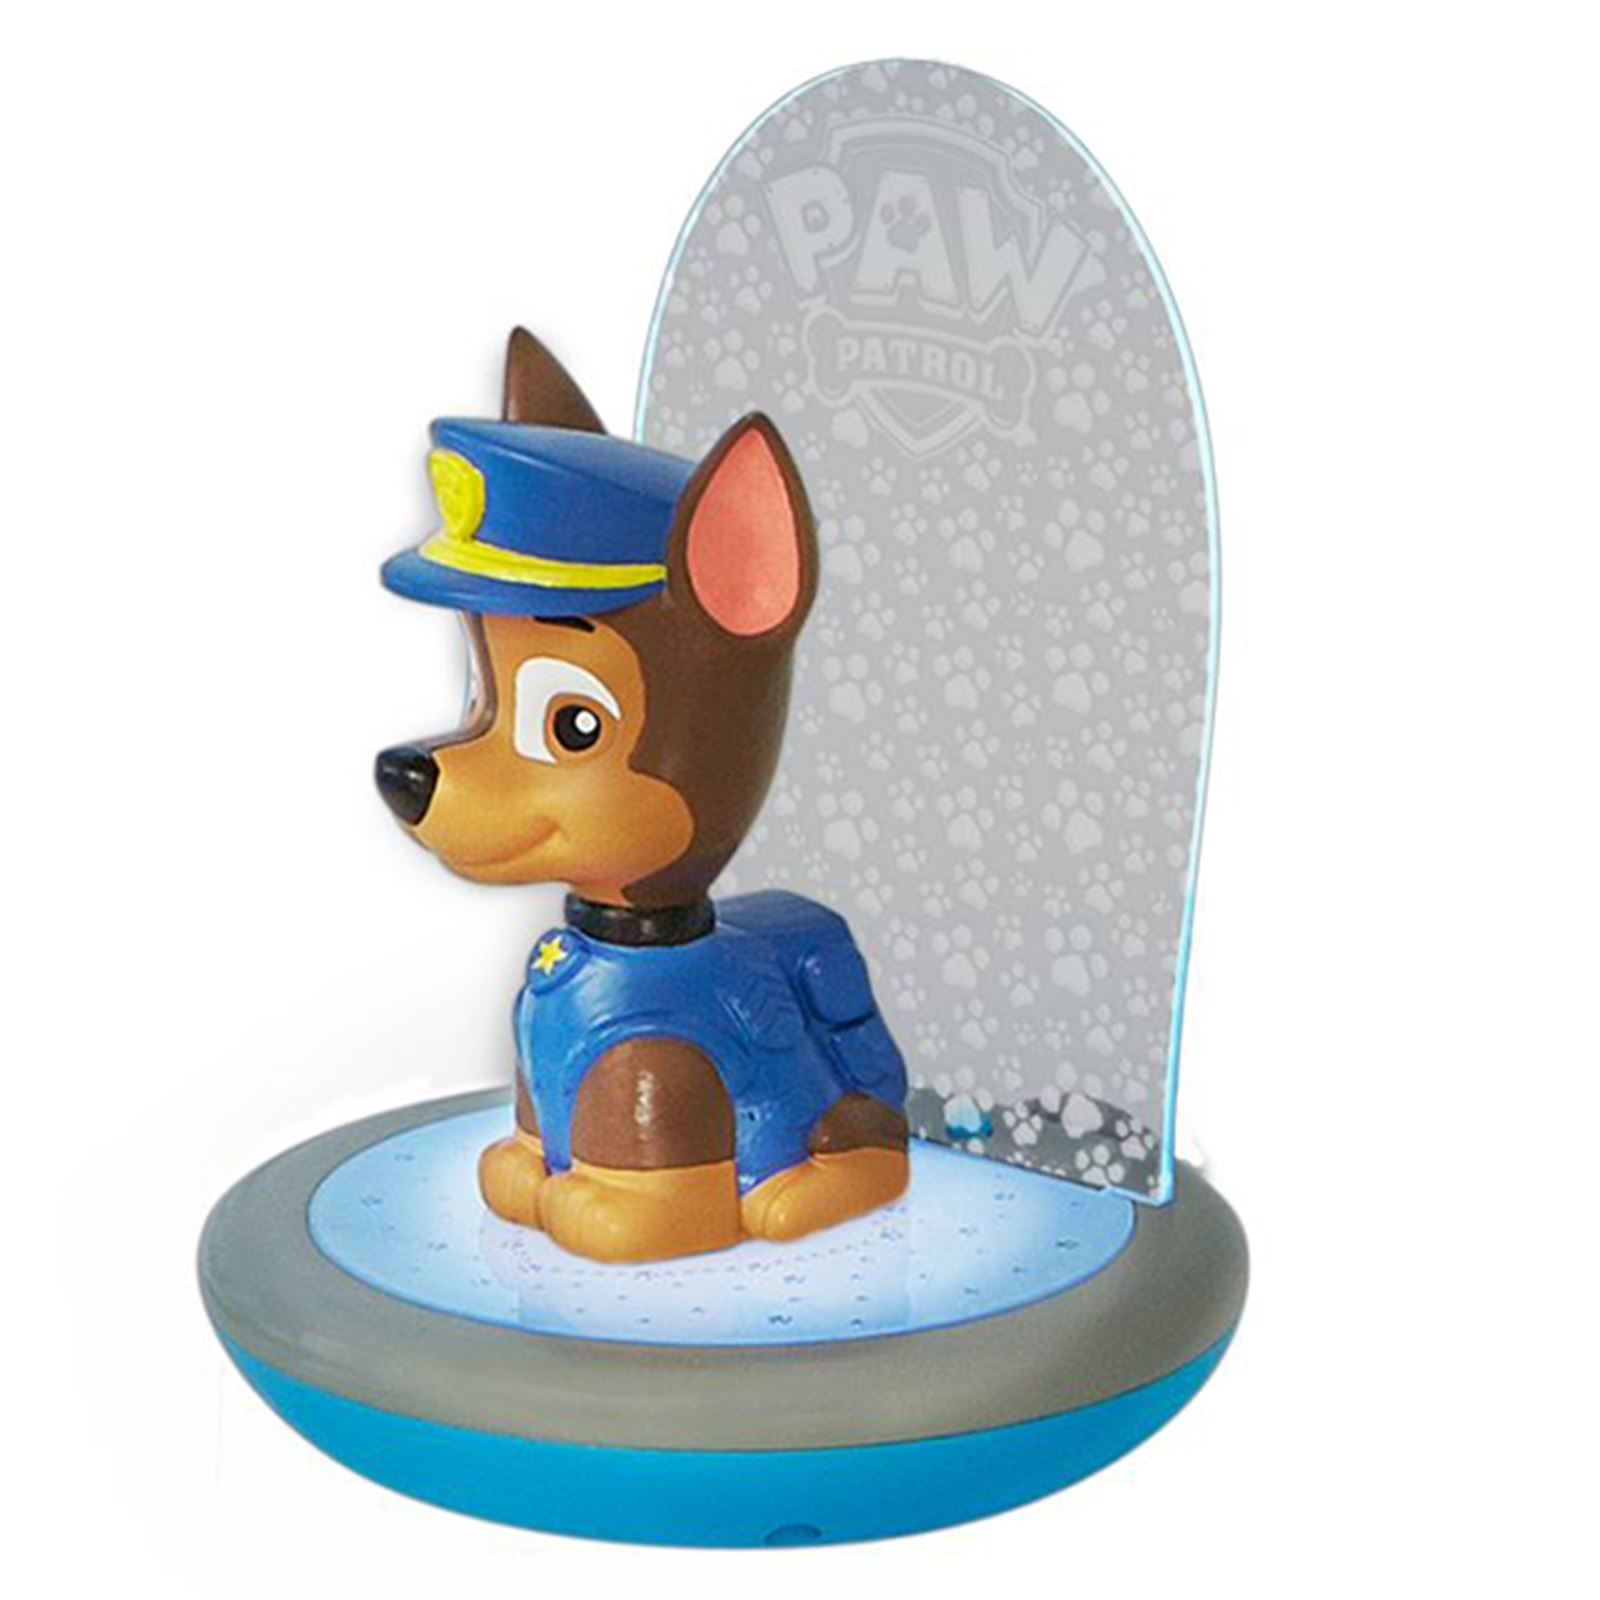 PAW PATROL CHASE 3 IN 1 MAGIC GO GLOW NIGHT LIGHT CHILDRENS BEDROOM  LIGHTING NEW cac69fa31957